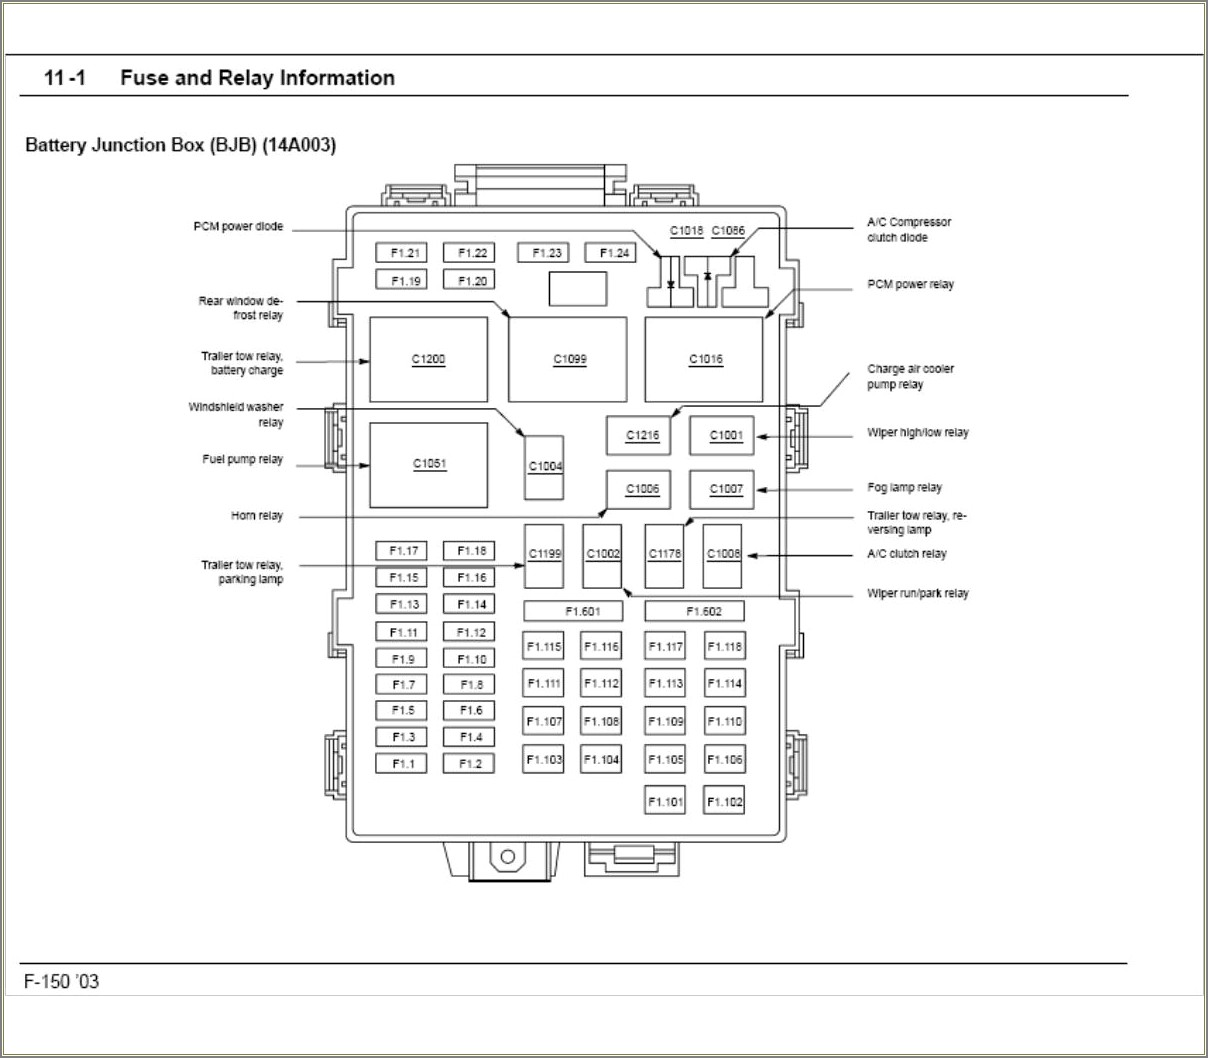 2000 Ford F150 Fuse Panel Diagram